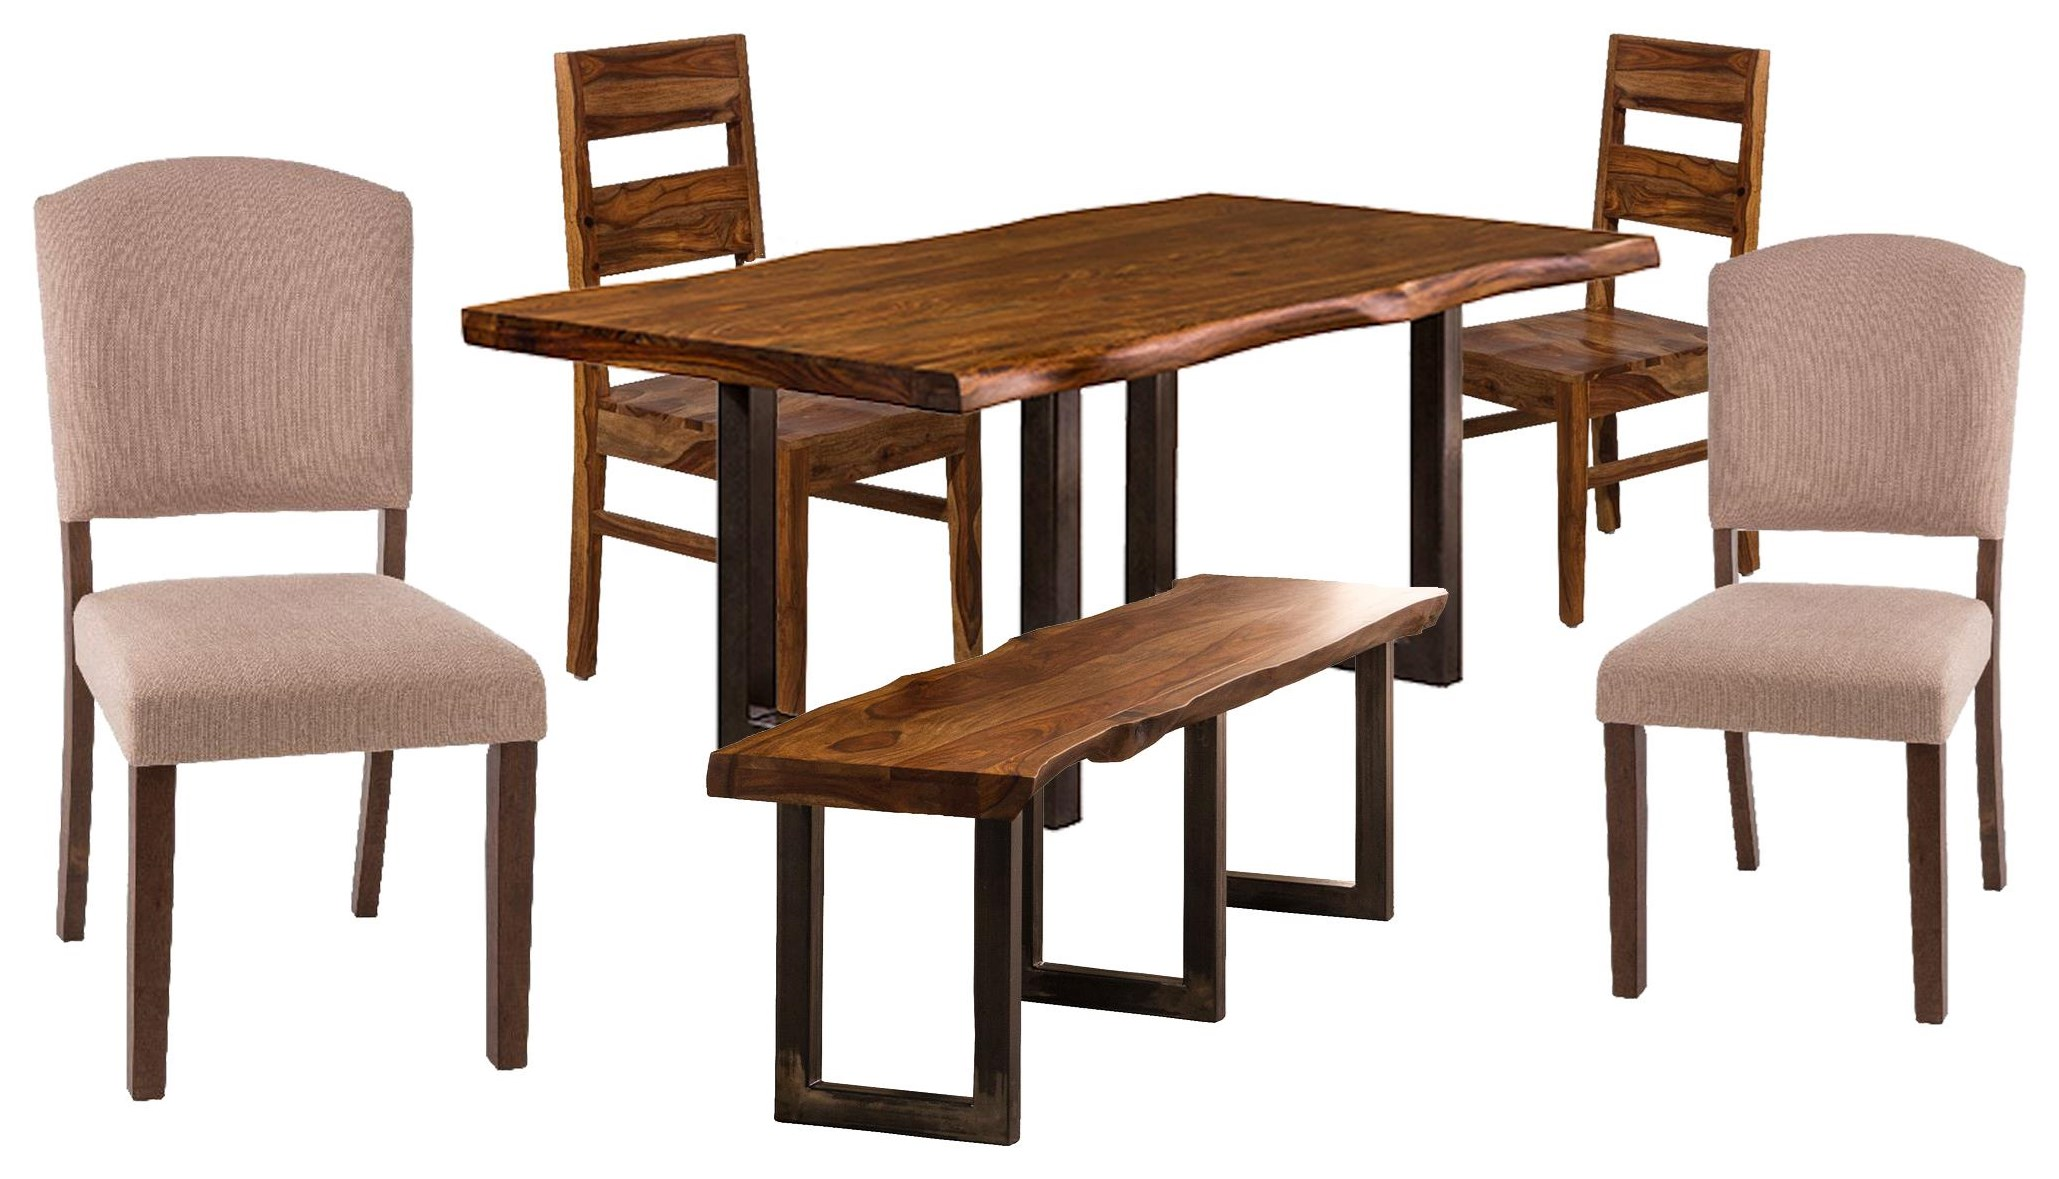 Emerson  Table, 2 Chairs, 2 Upholstered Chair, Bench by Hillsdale at Johnny Janosik